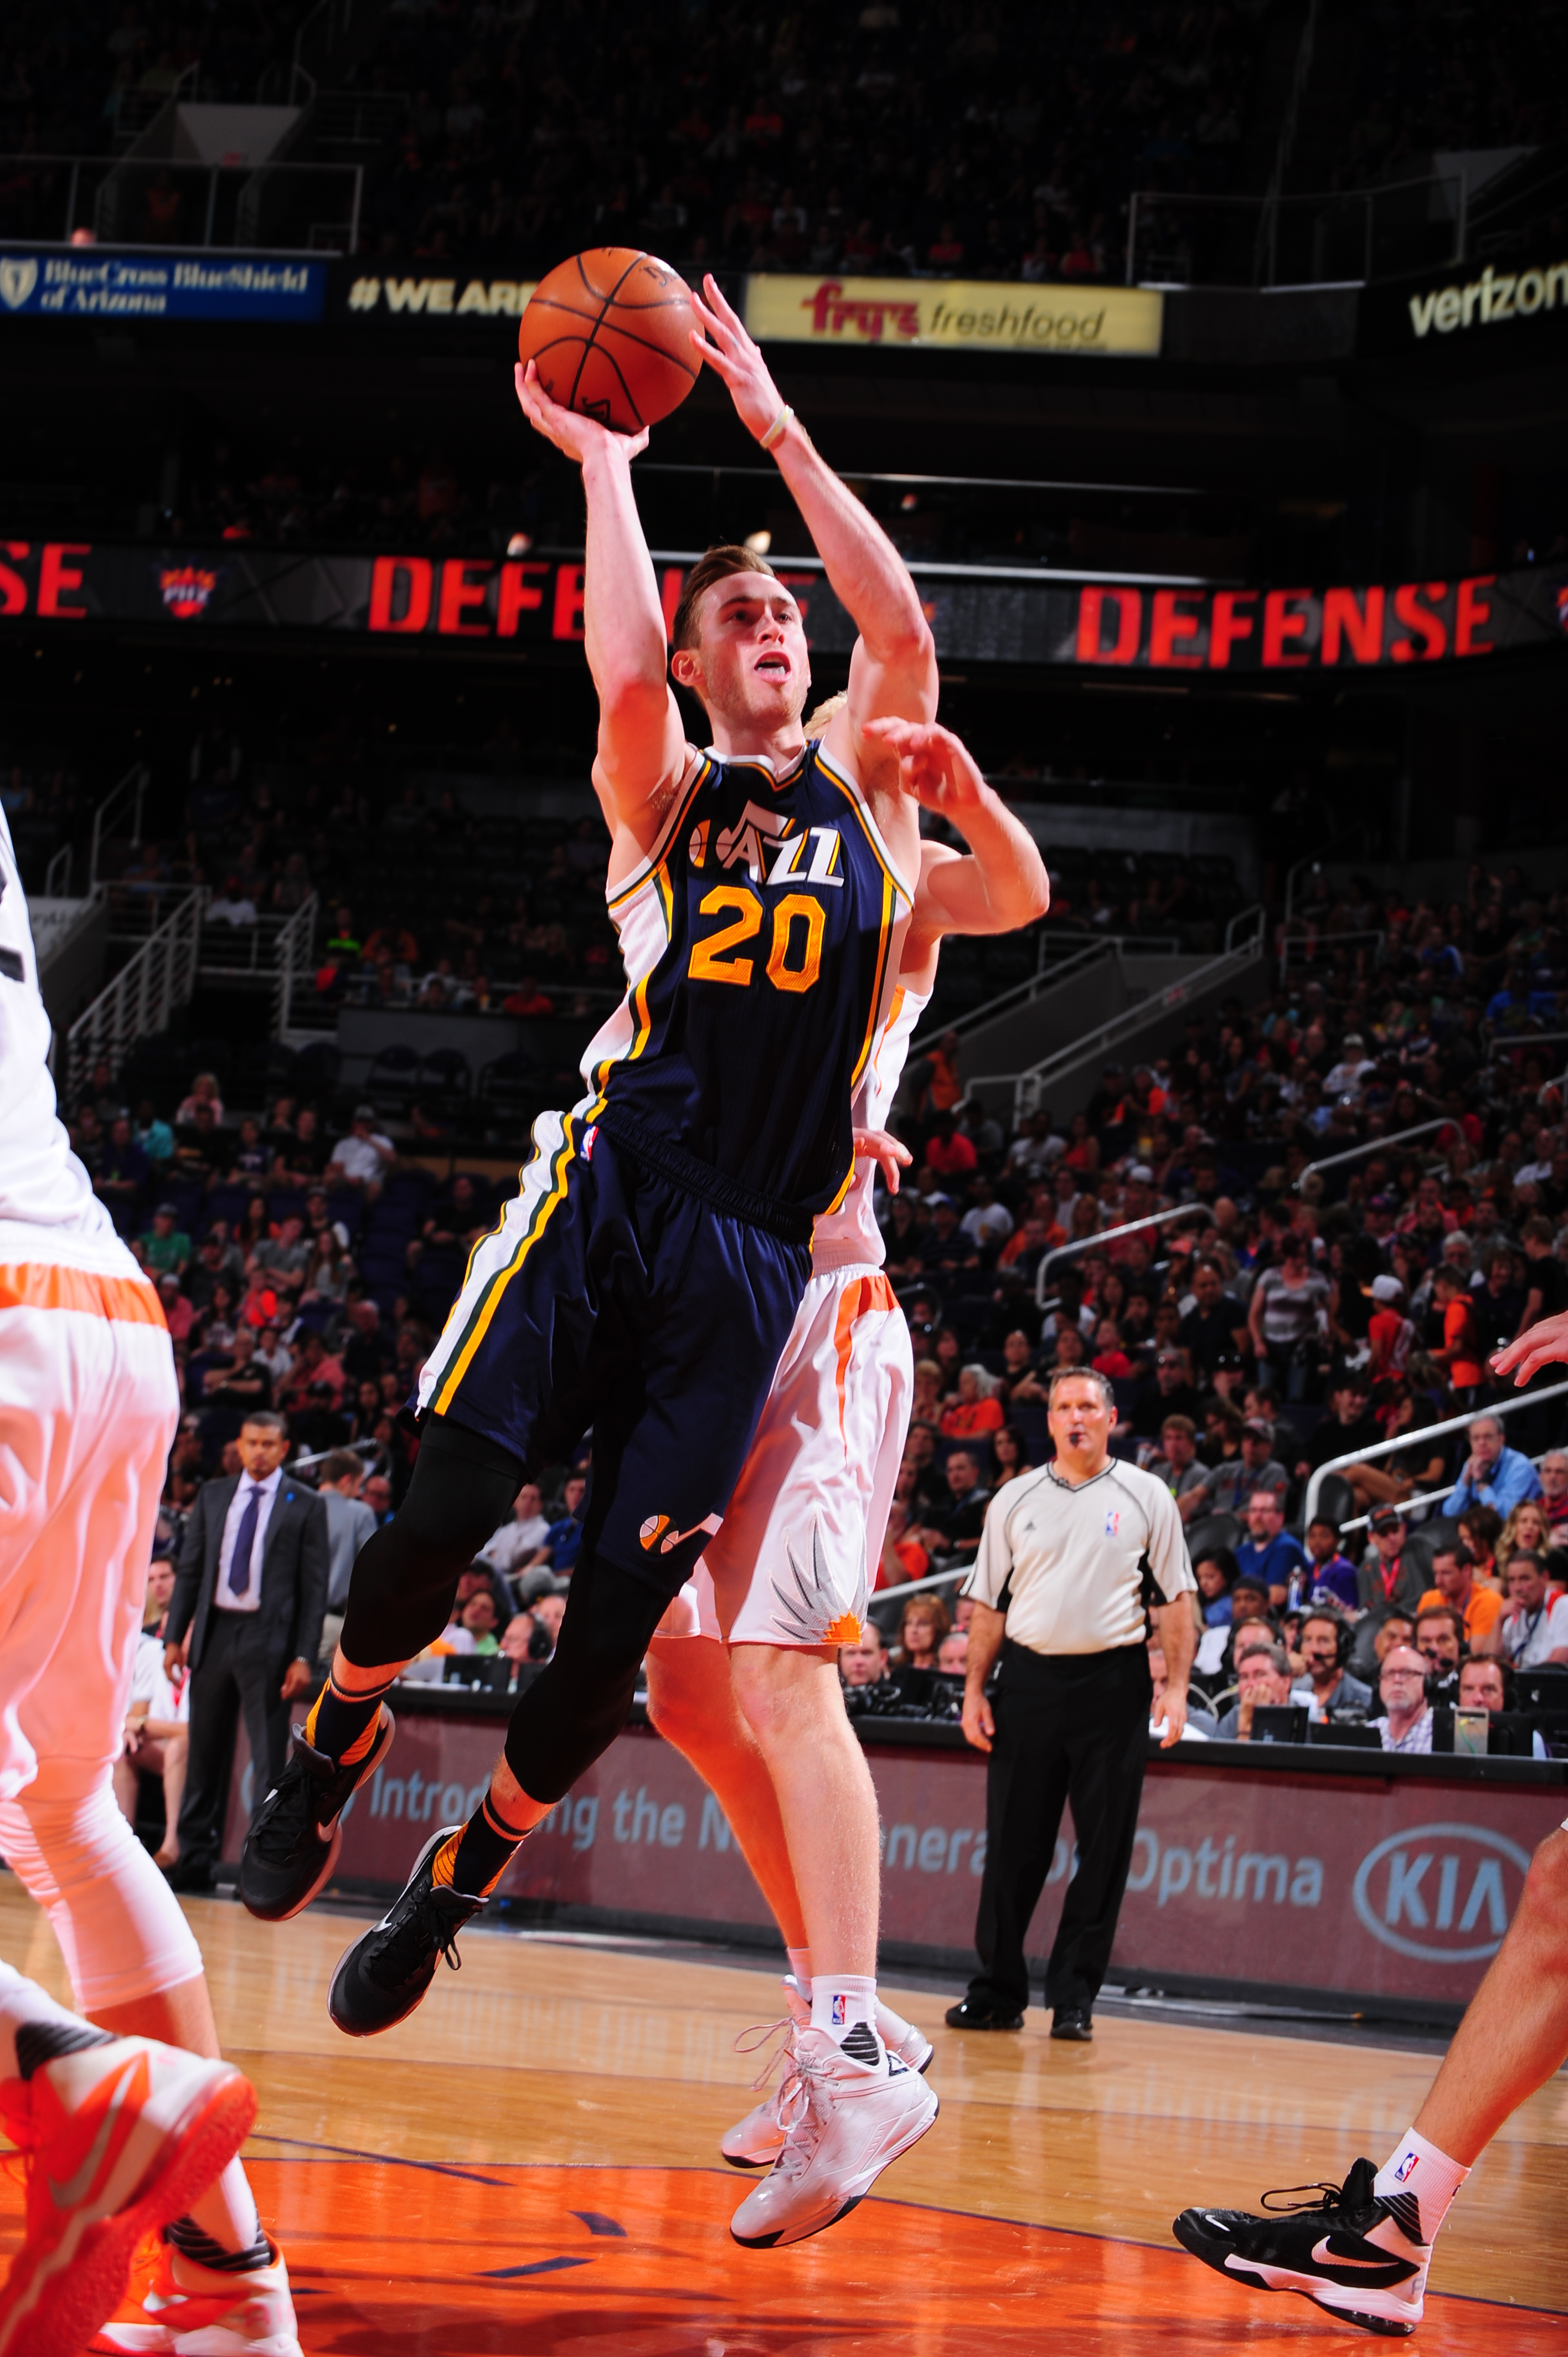 PHOENIX, AZ - APRIL 3: Gordon Hayward #20 of the Utah Jazz shoots the ball against the Phoenix Suns on April 3, 2016  at U.S. Airways Center in Phoenix, Arizona. (Photo by Barry Gossage/NBAE via Getty Images)